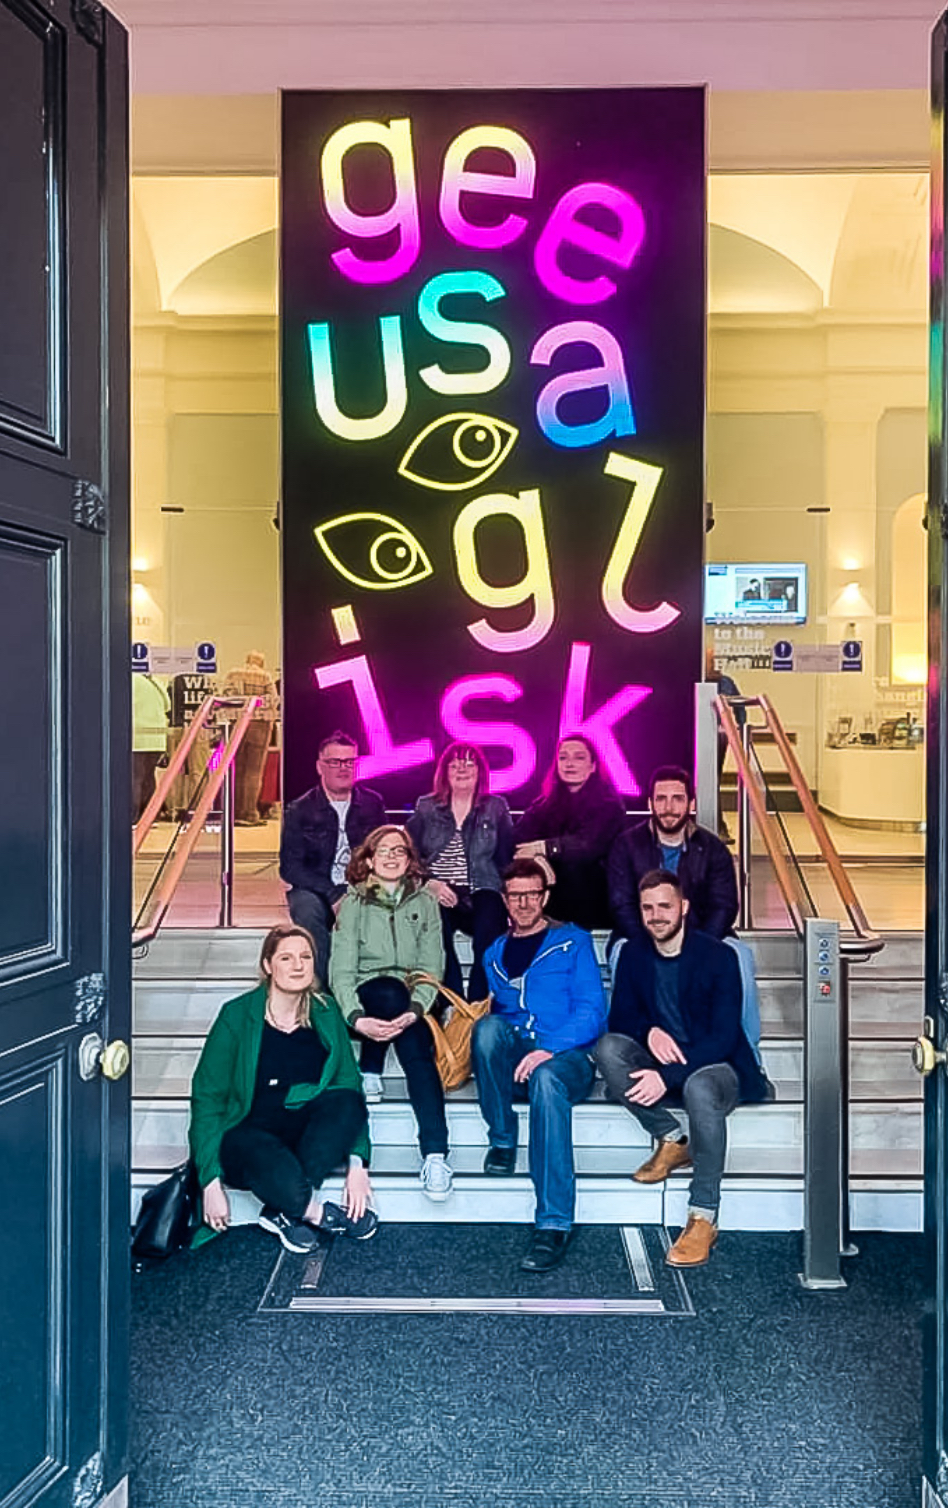 , Foos yer Doric min? Interact with our digital exhibit, 'Glisk' during Look Again Festival 2019